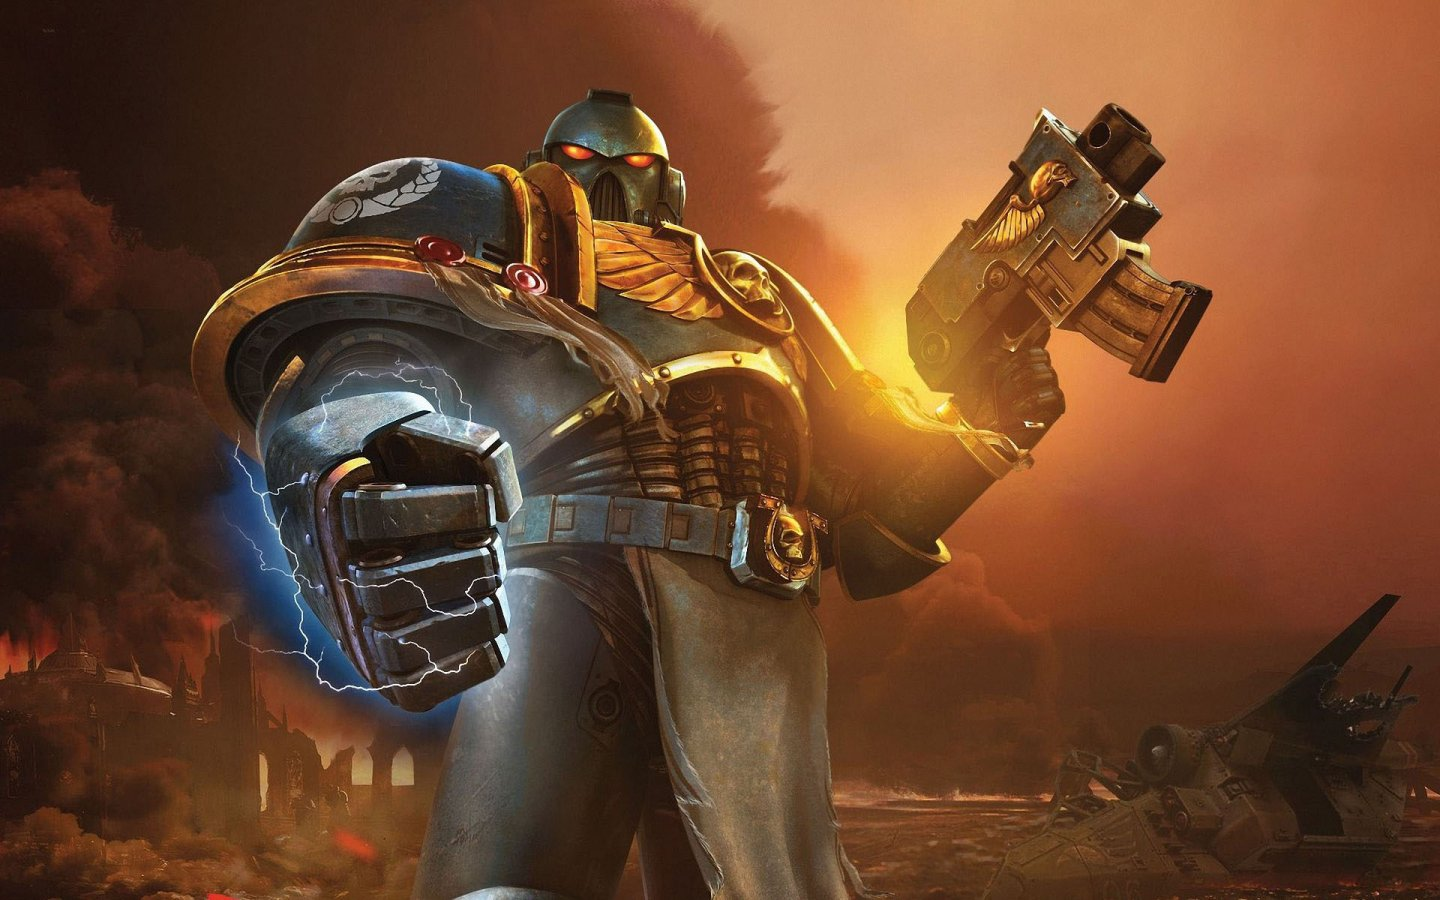 Warhammer 40K Space Marine 1440x900 Wallpapers 1440x900 Wallpapers 1440x900